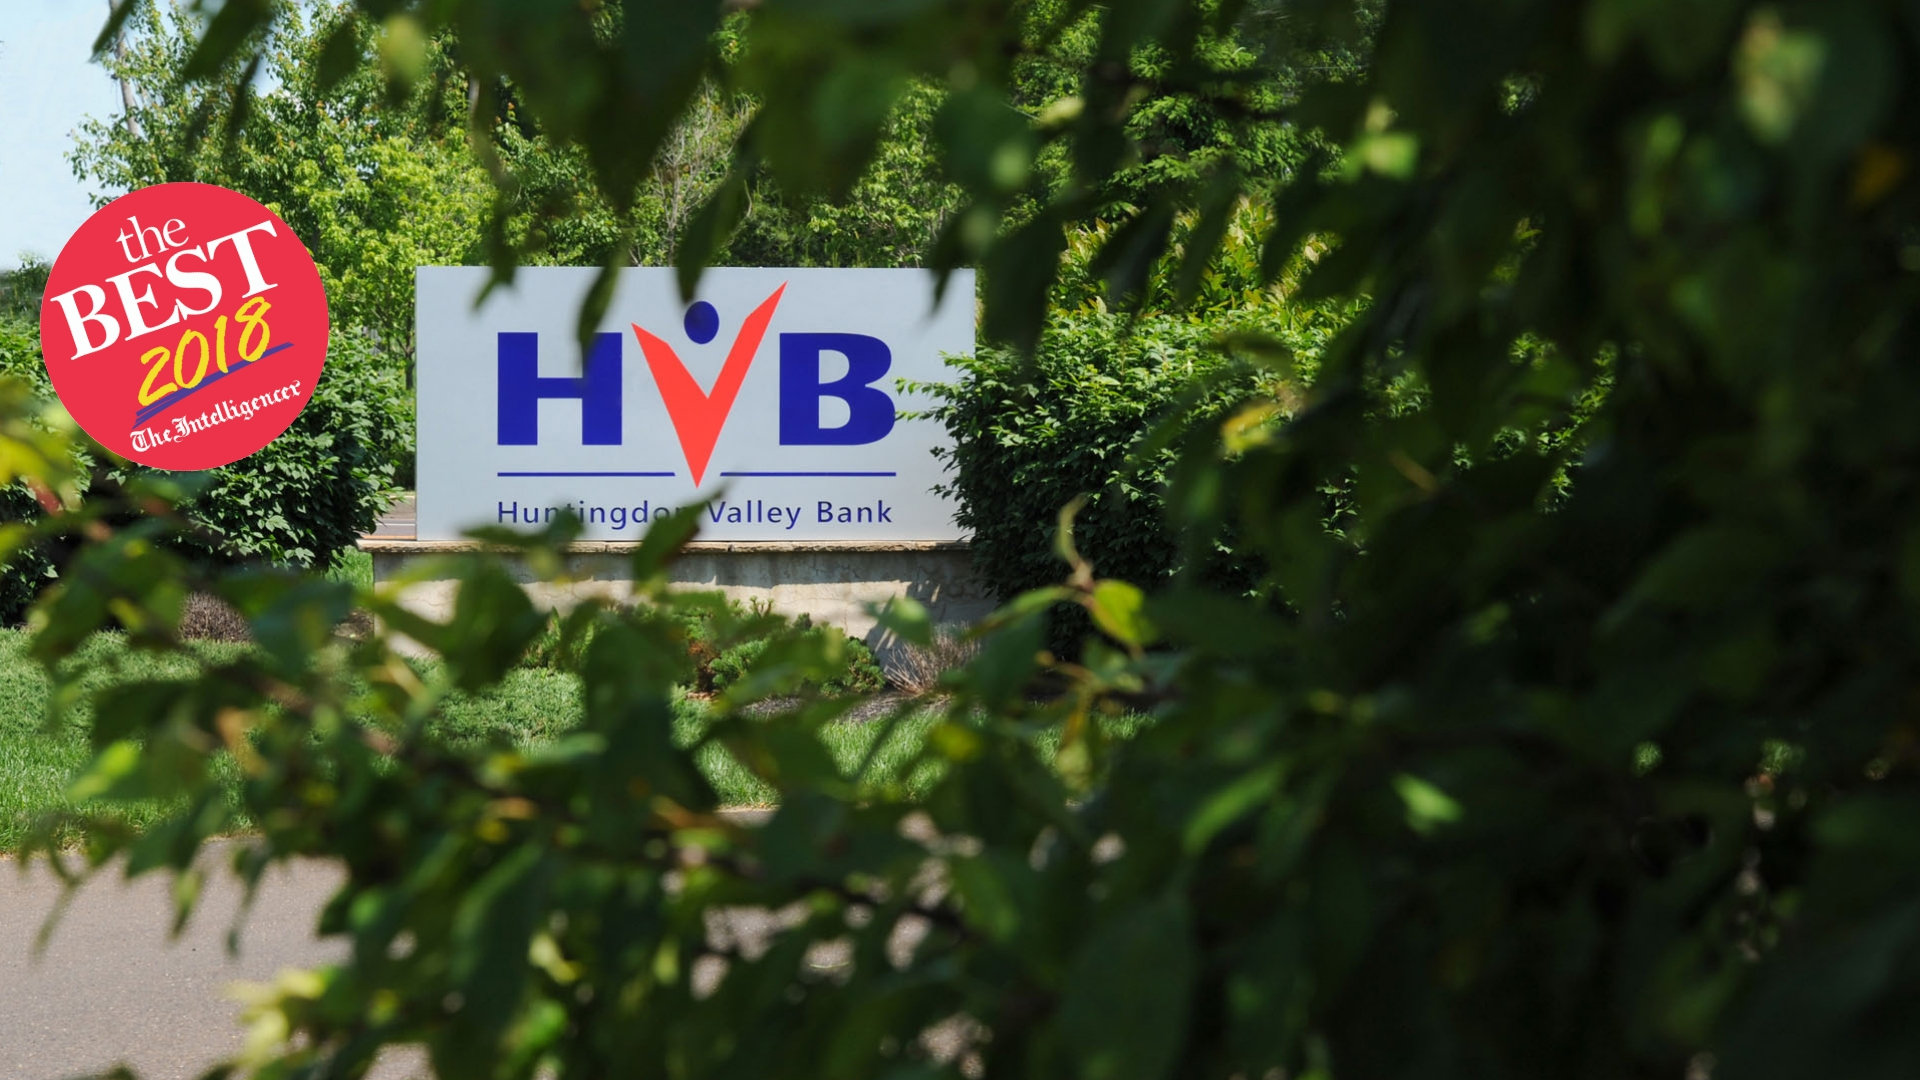 HVB Sign Hero Image